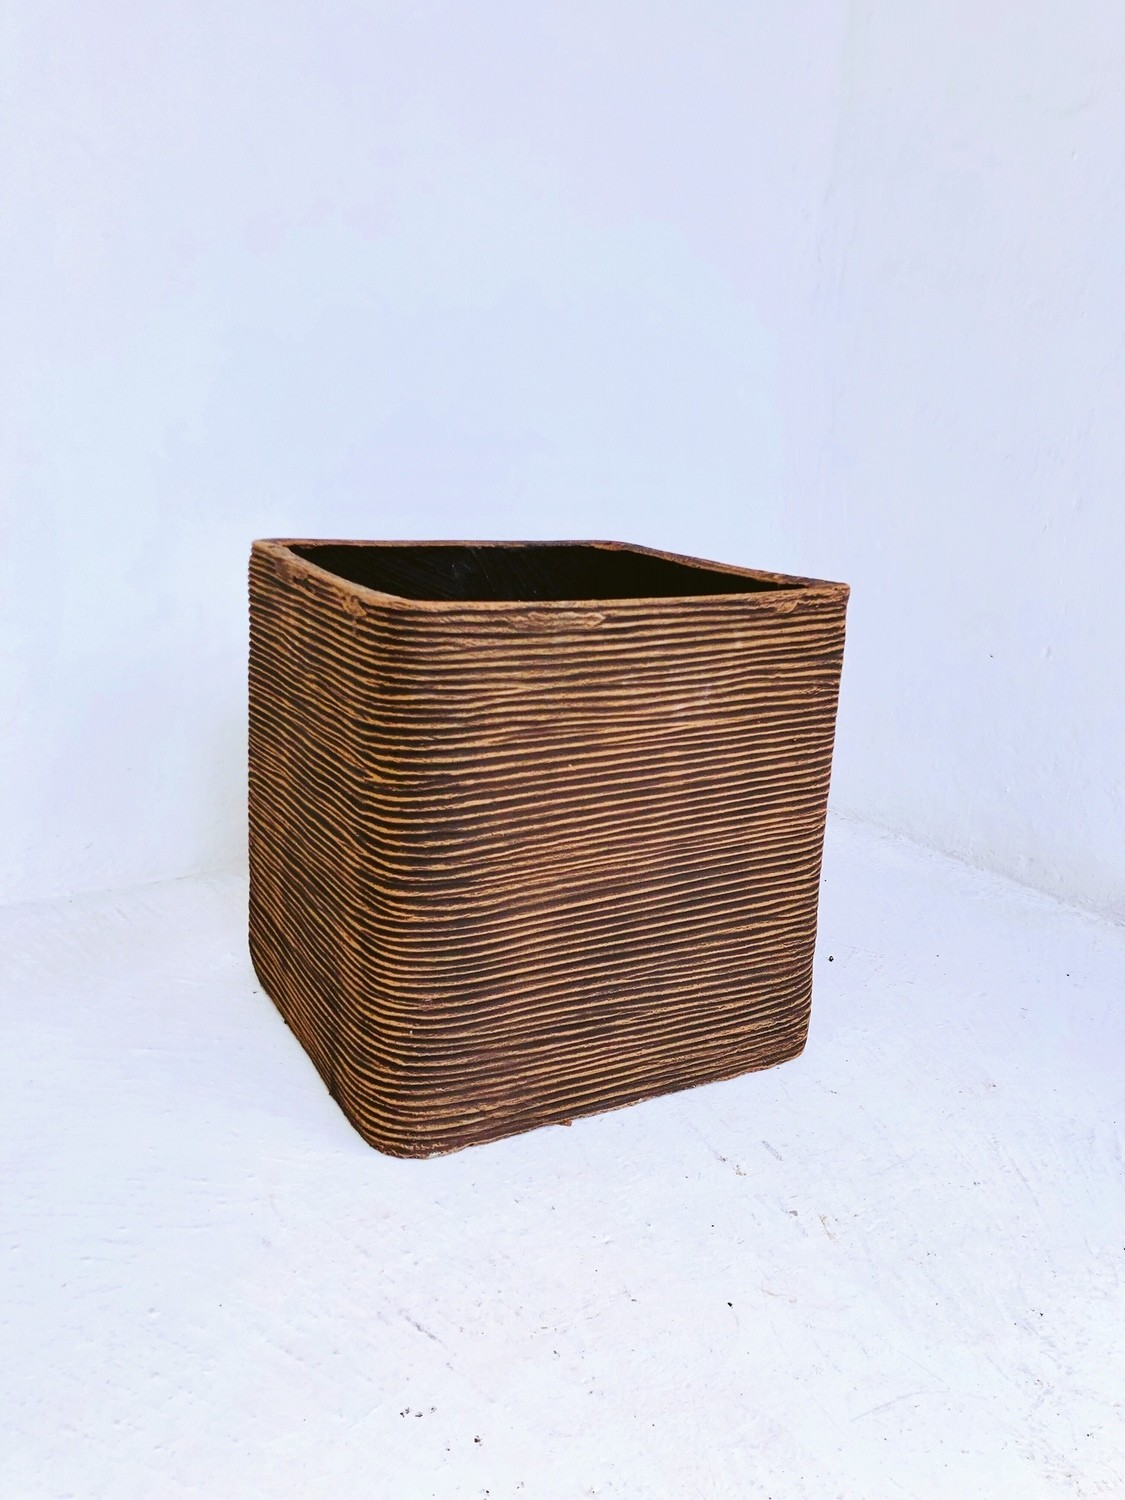 Braided Square Planter Large Mecca Brown Finish - H400mm x W400mm - 24kg